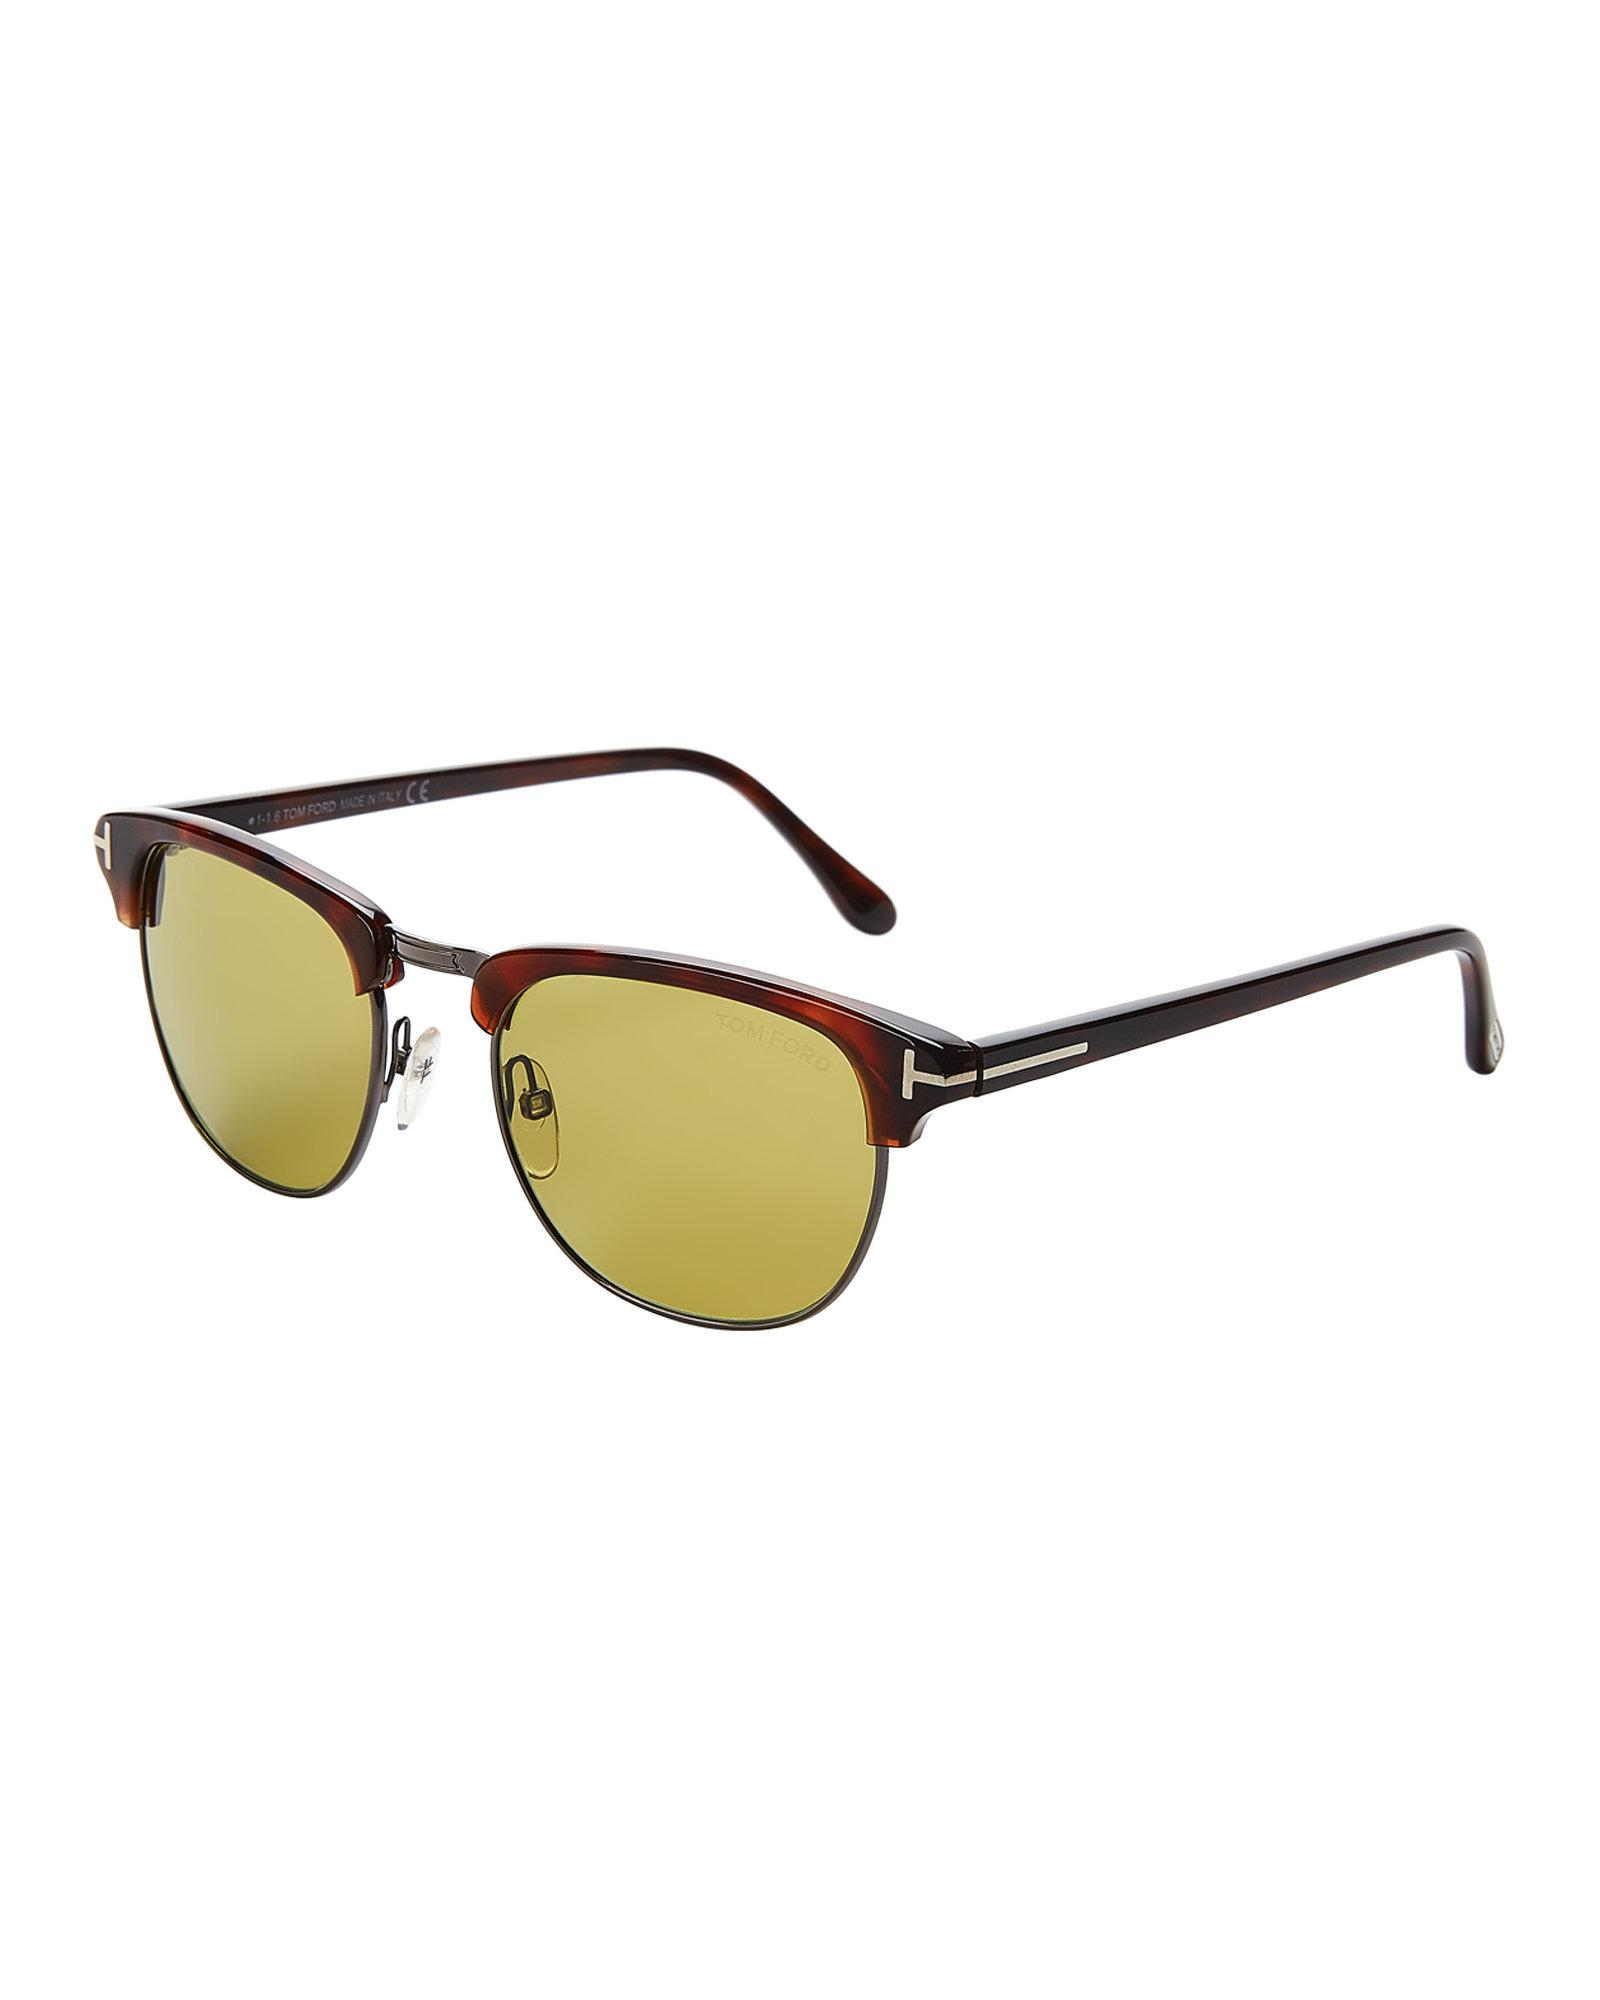 af066357df5 Gallery. Previously sold at  Century 21 · Women s Tom Ford Henry Women s  Clubmaster Sunglasses Women s Small Cat Eye ...